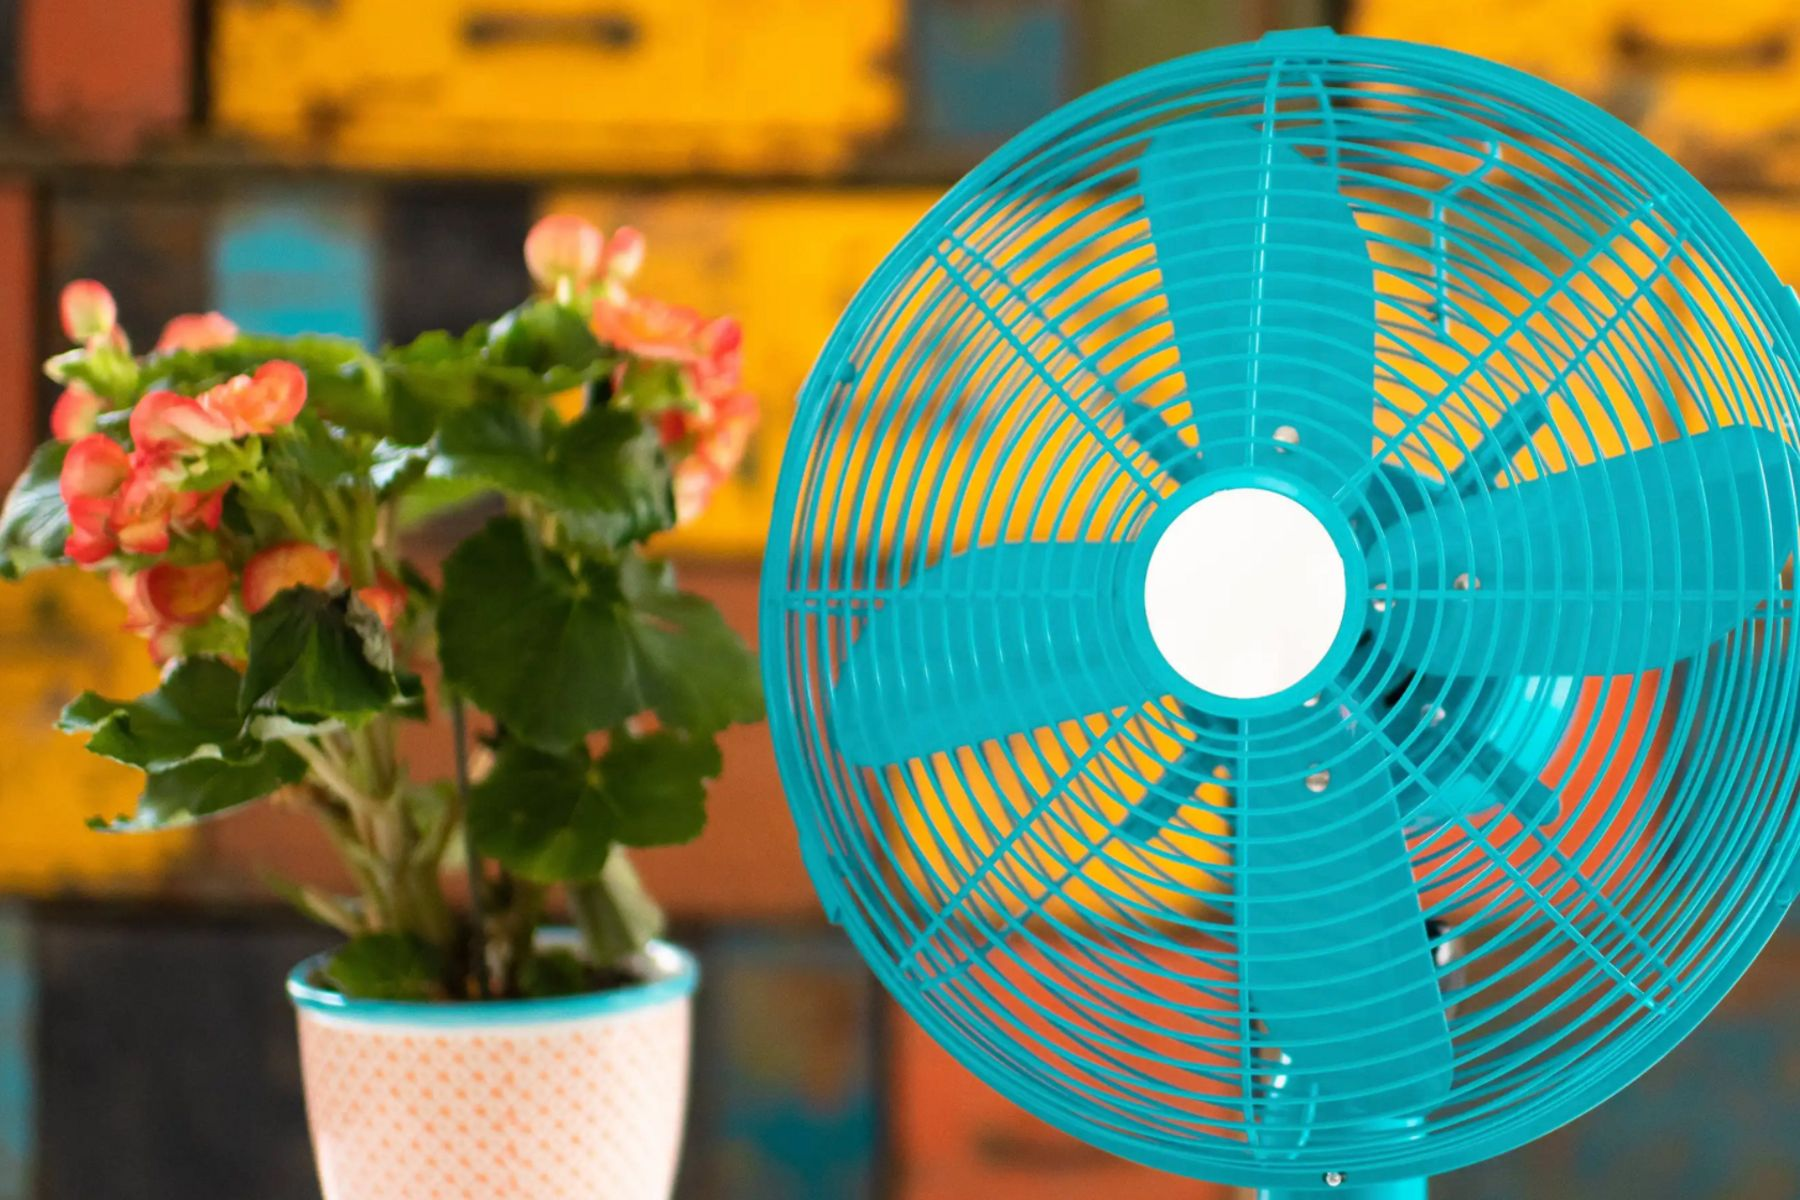 A blue fan next to some potted plants